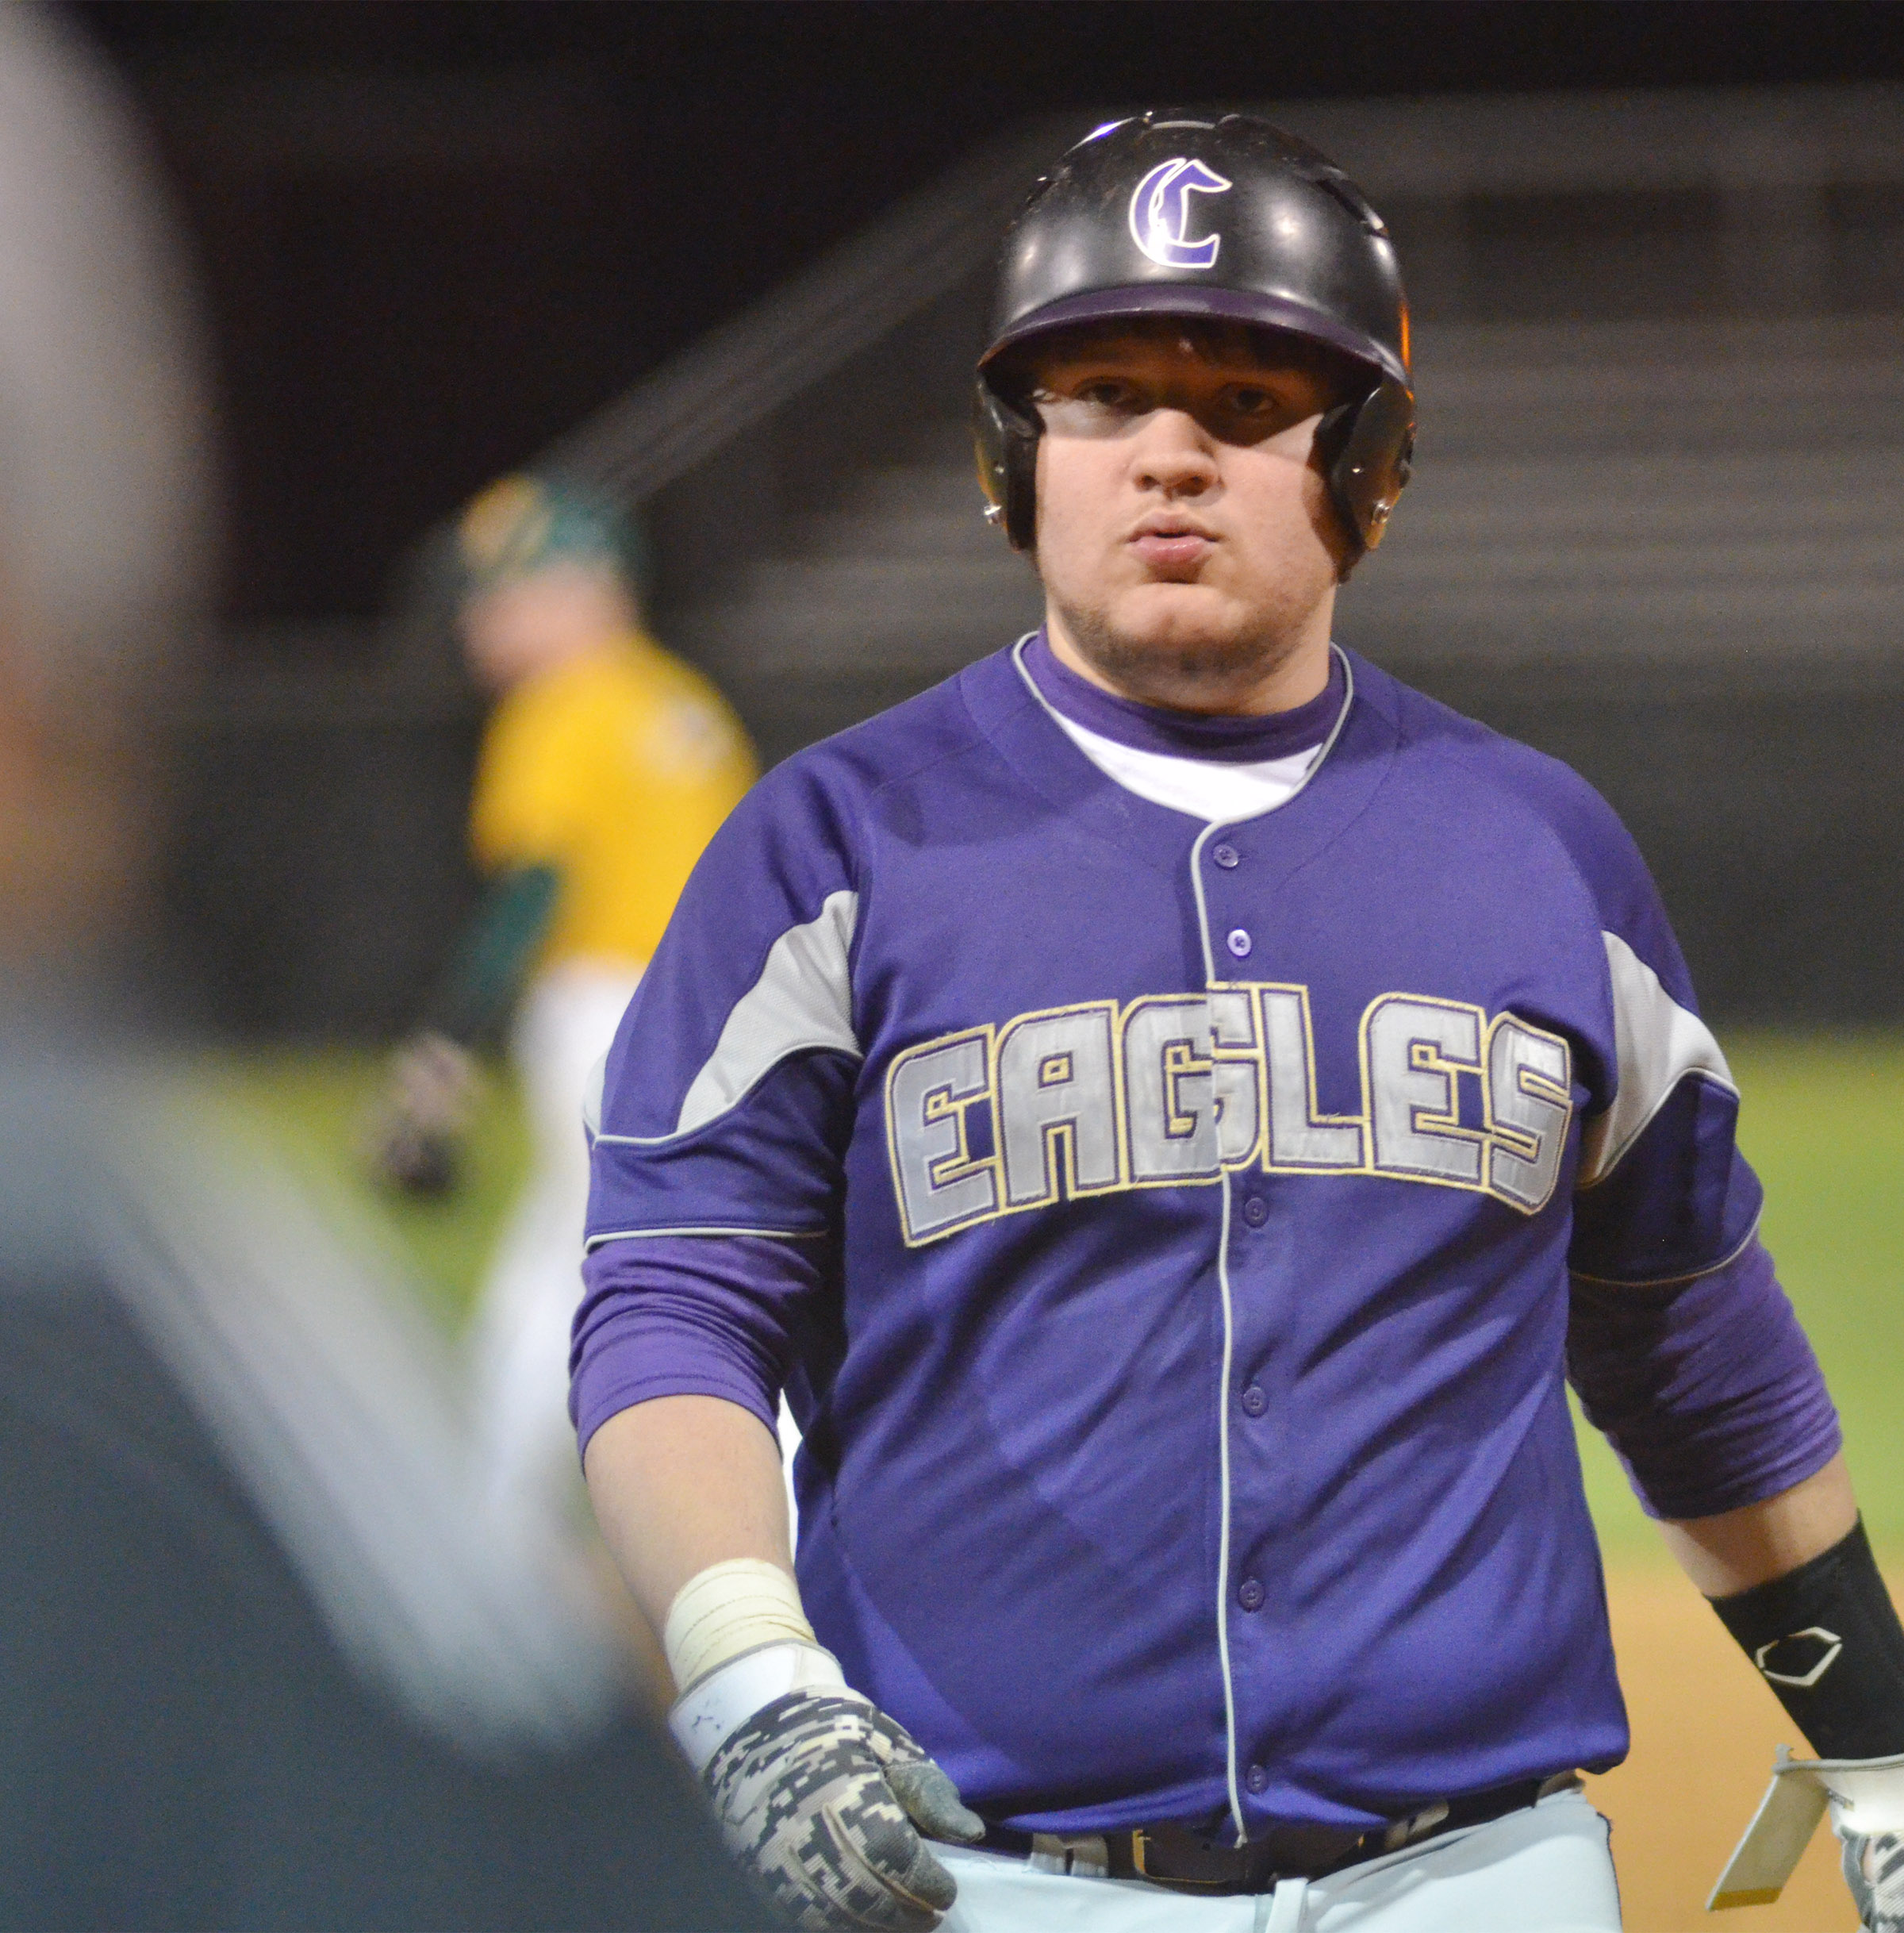 CHS senior Donnie Osinger walks to the dugout.